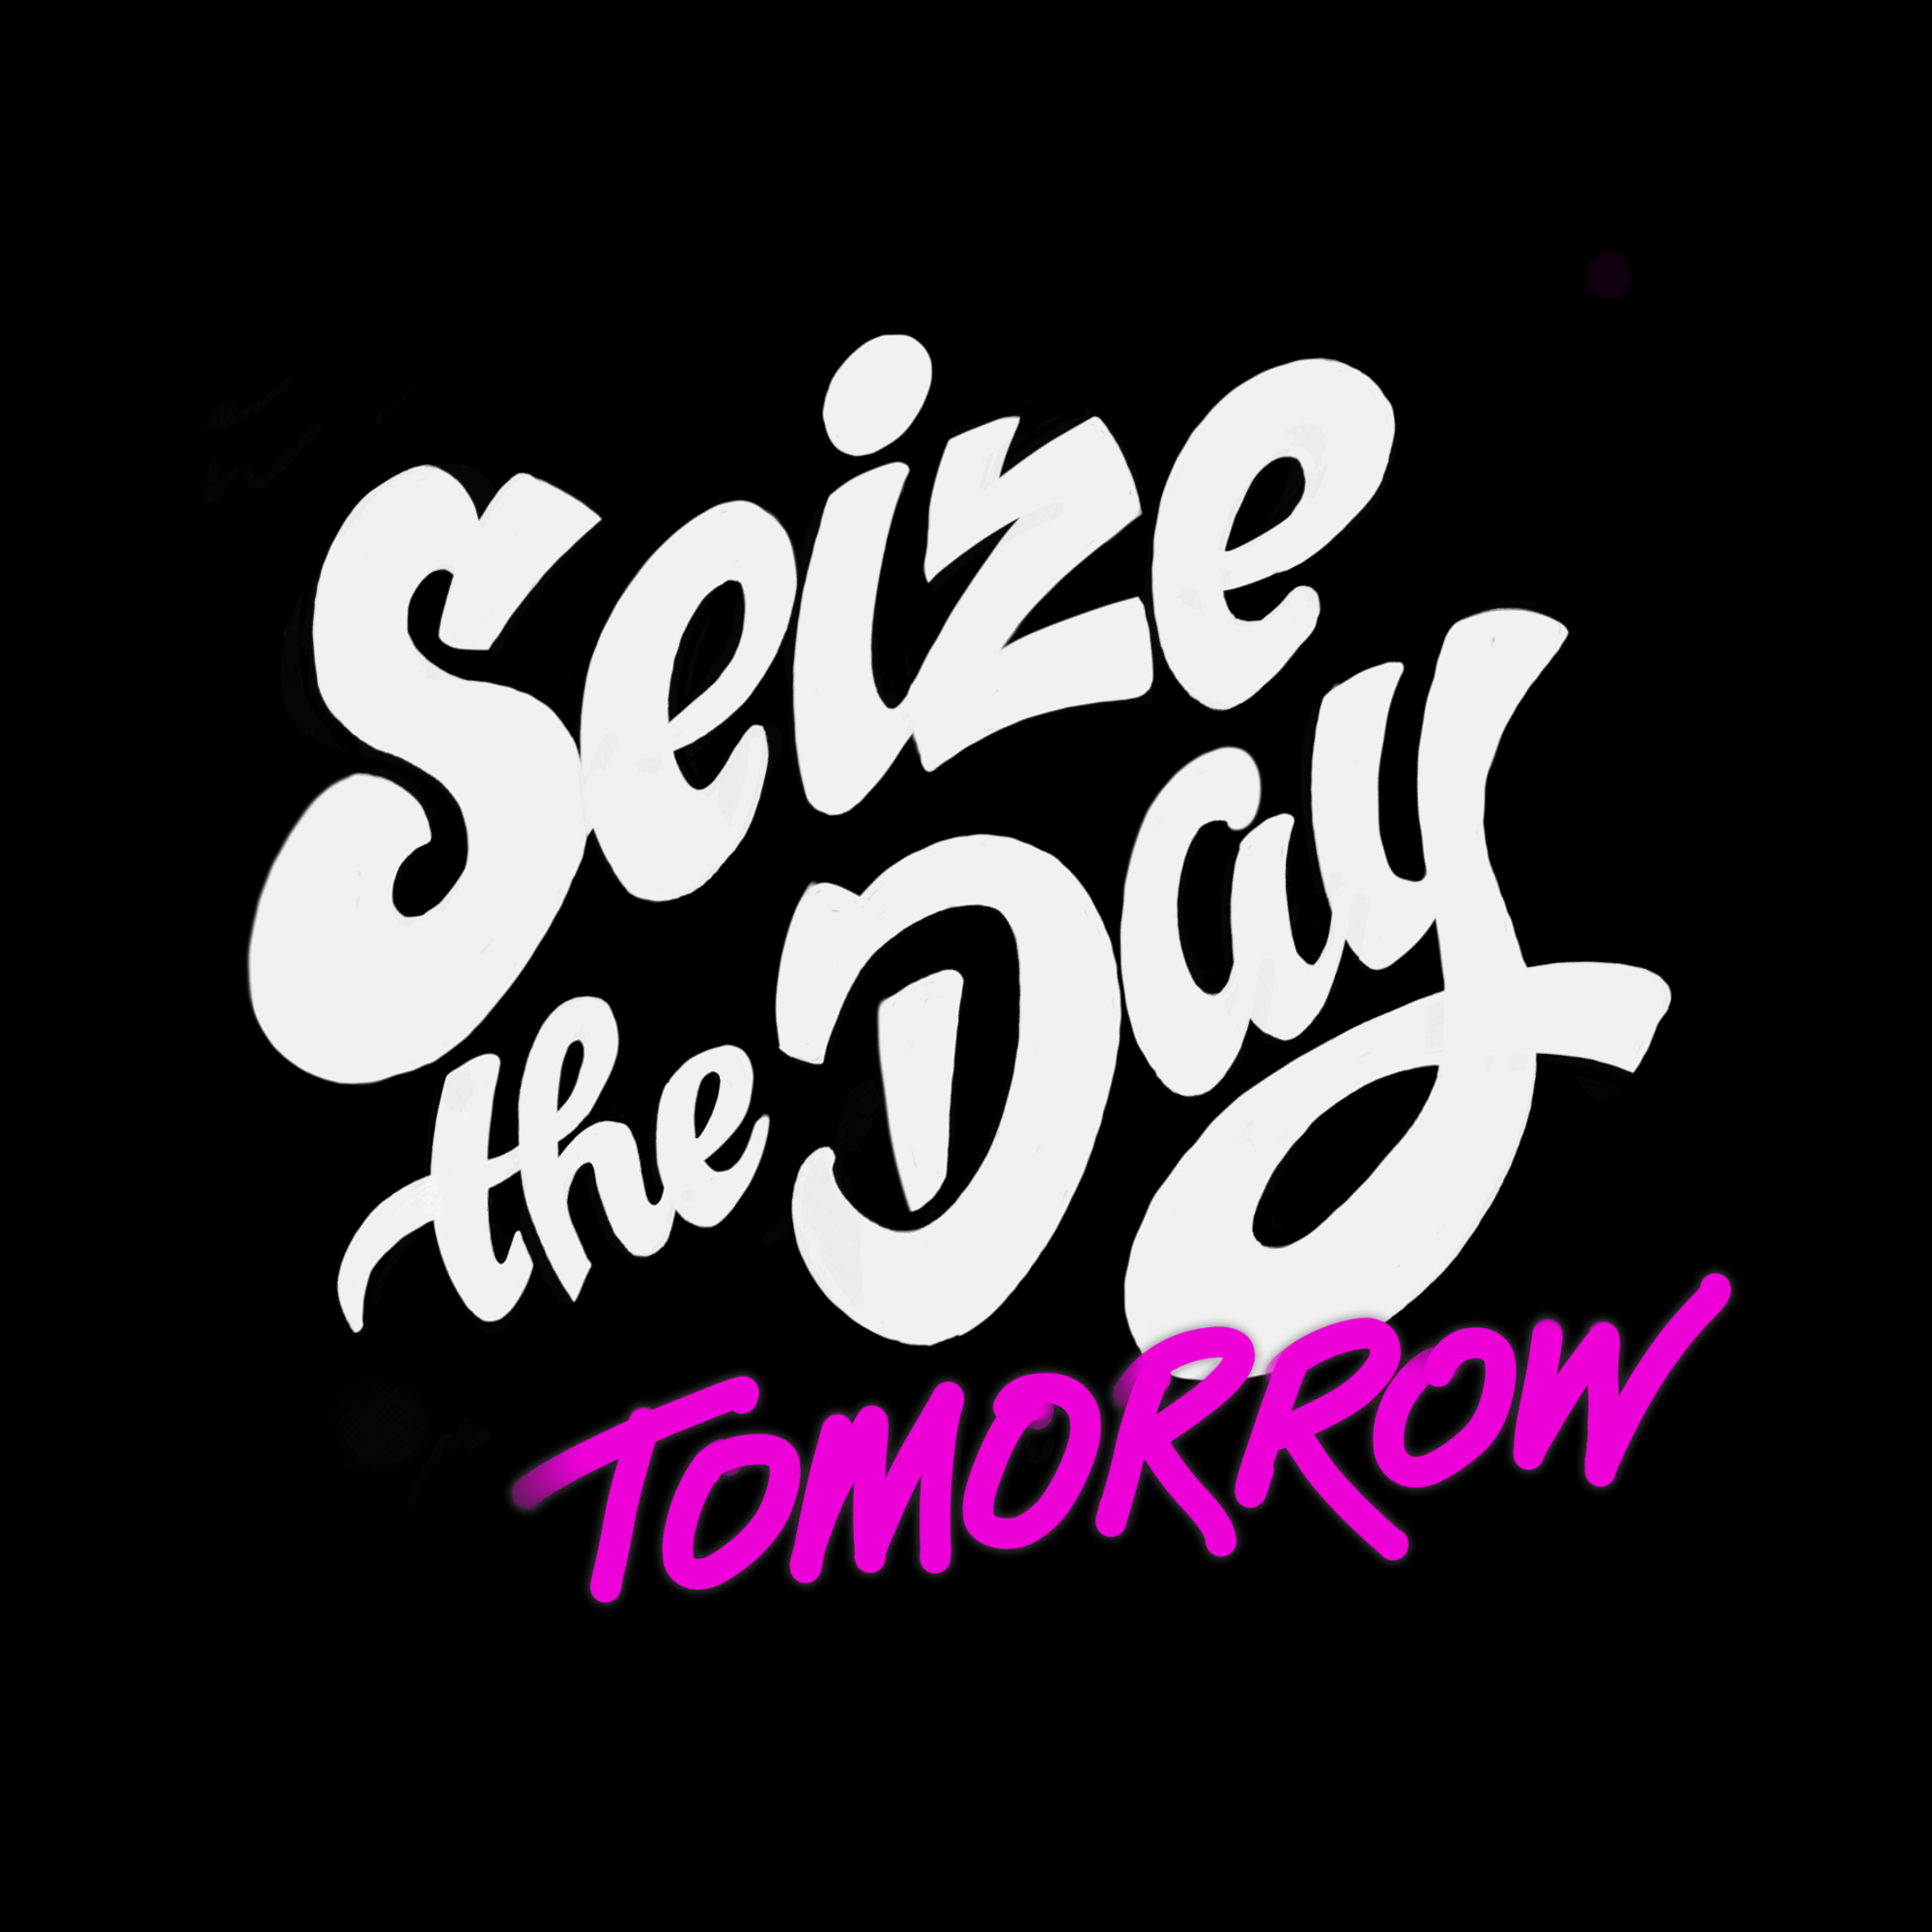 seize the day tomorrow